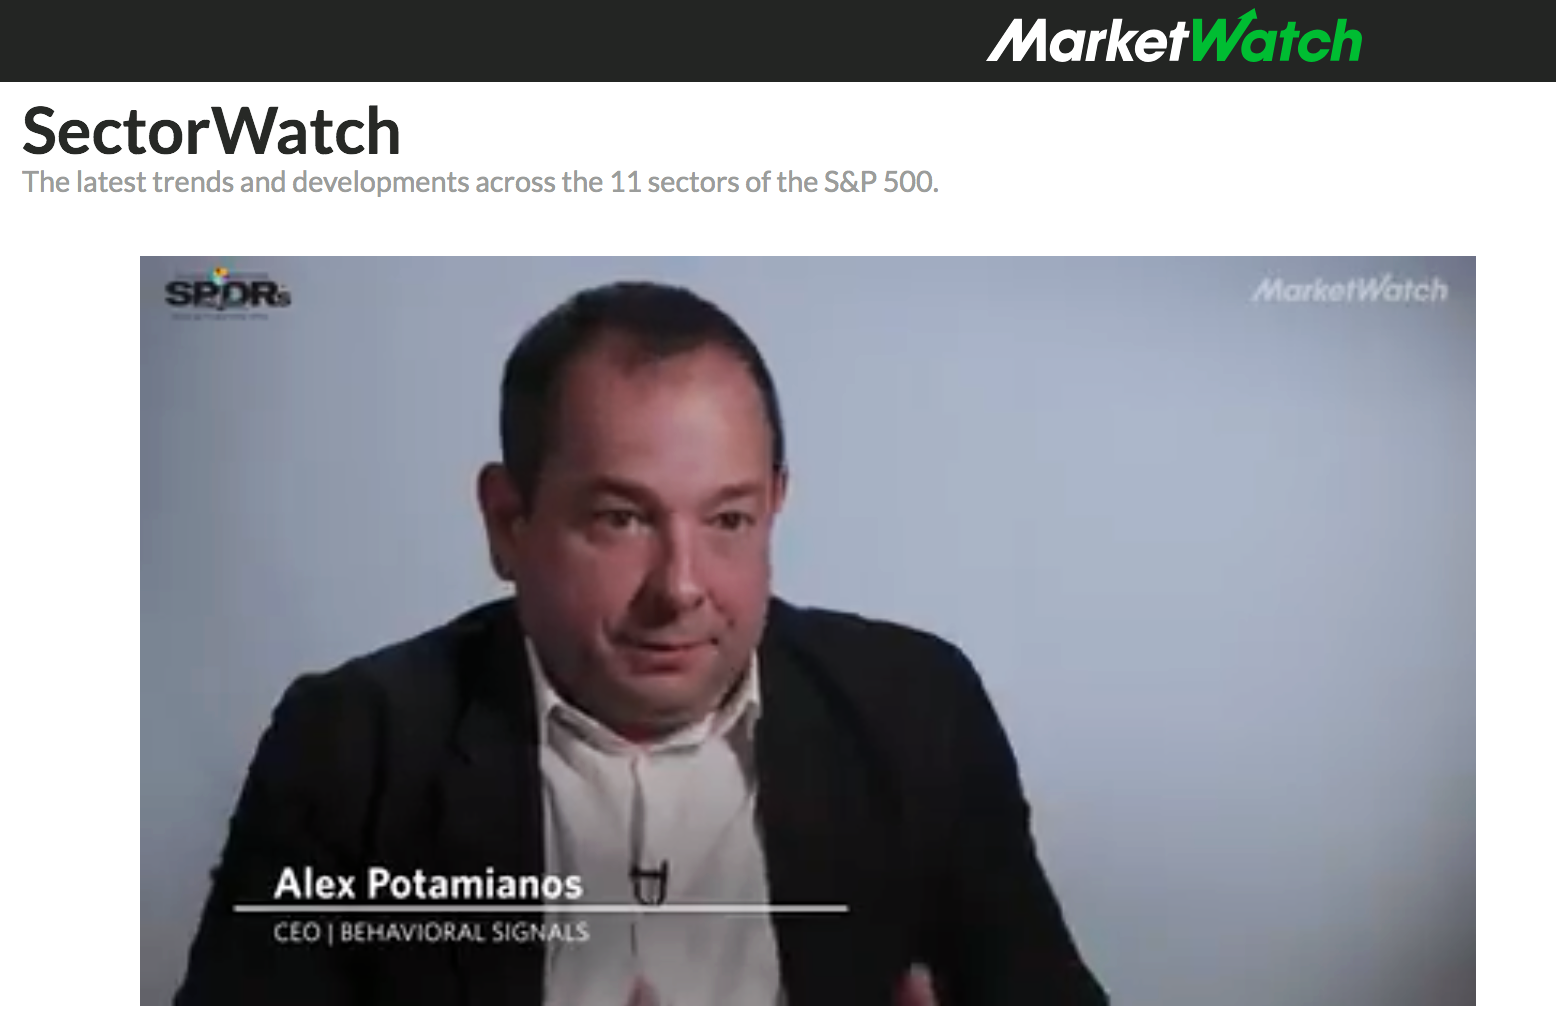 Alex Potamianos interview with MarketWatch